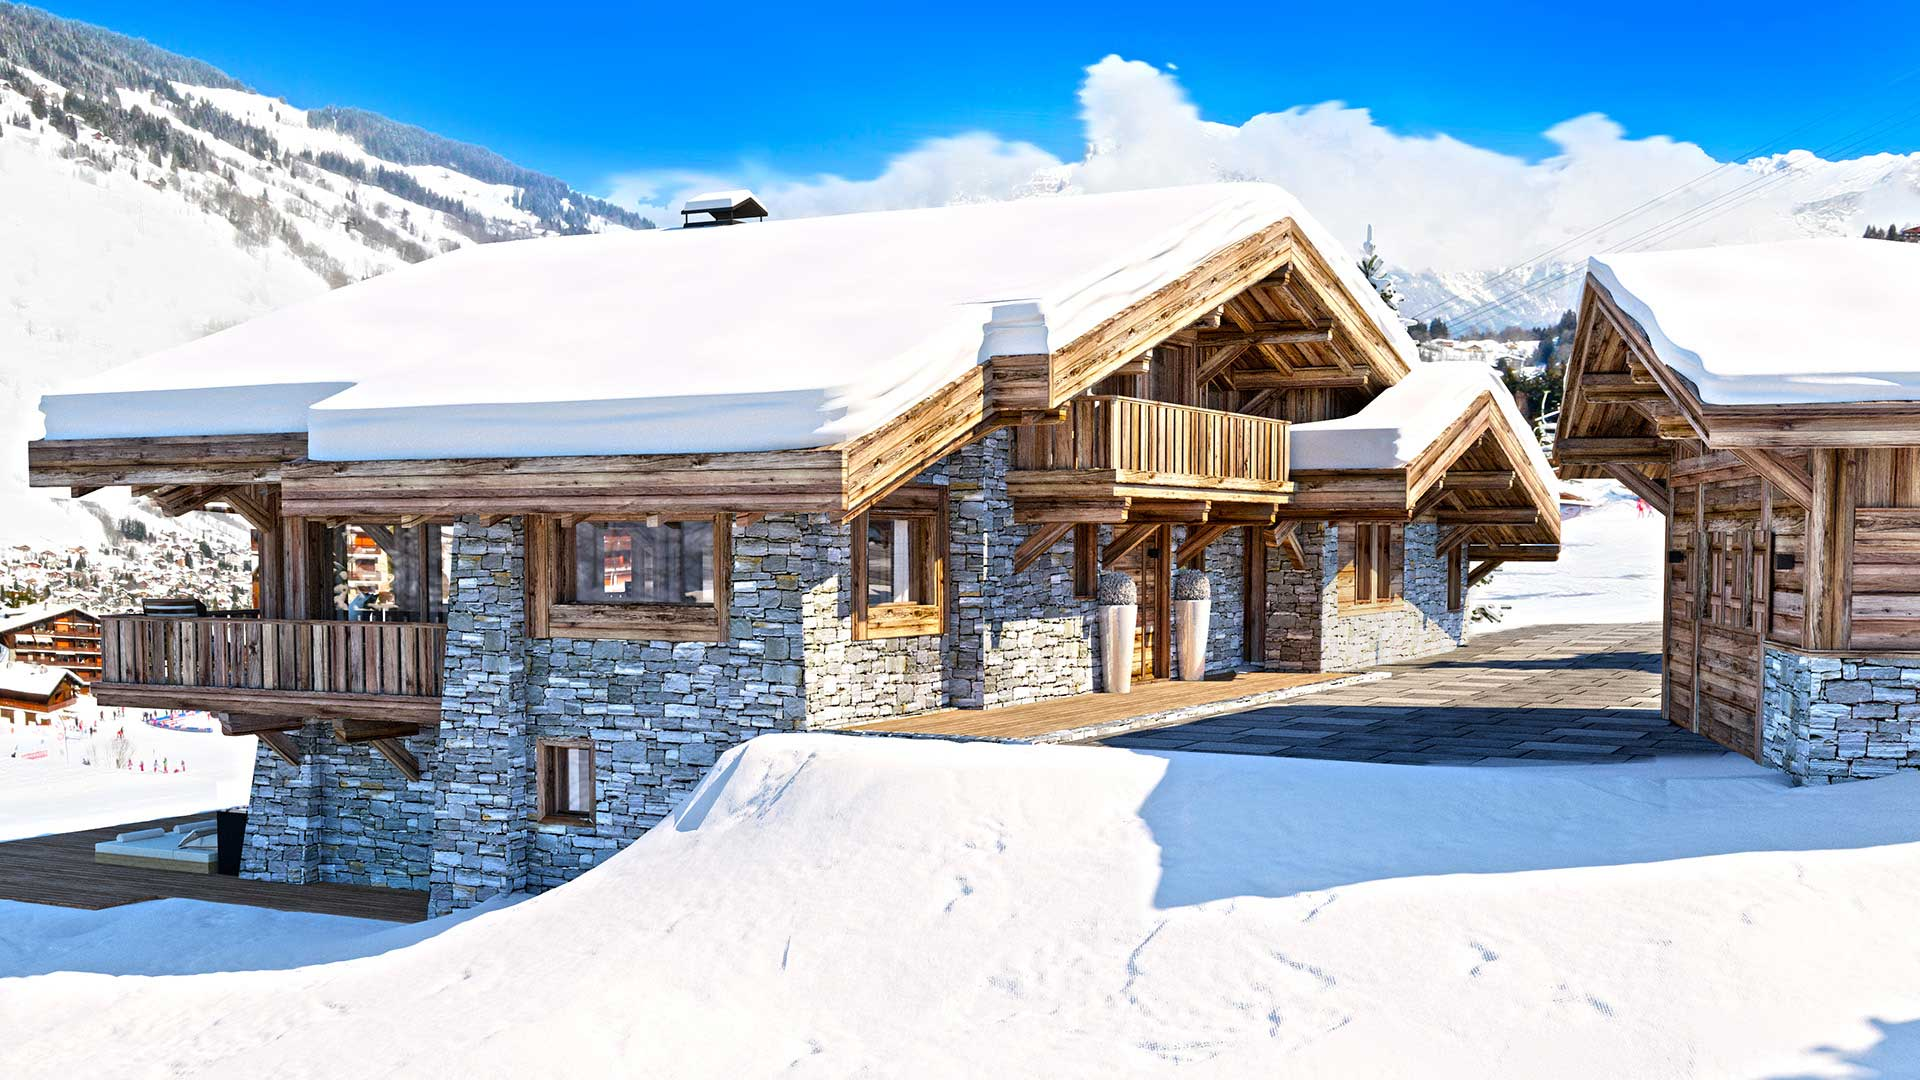 Creation of a 3D photo of a luxurious chalet in the mountains.